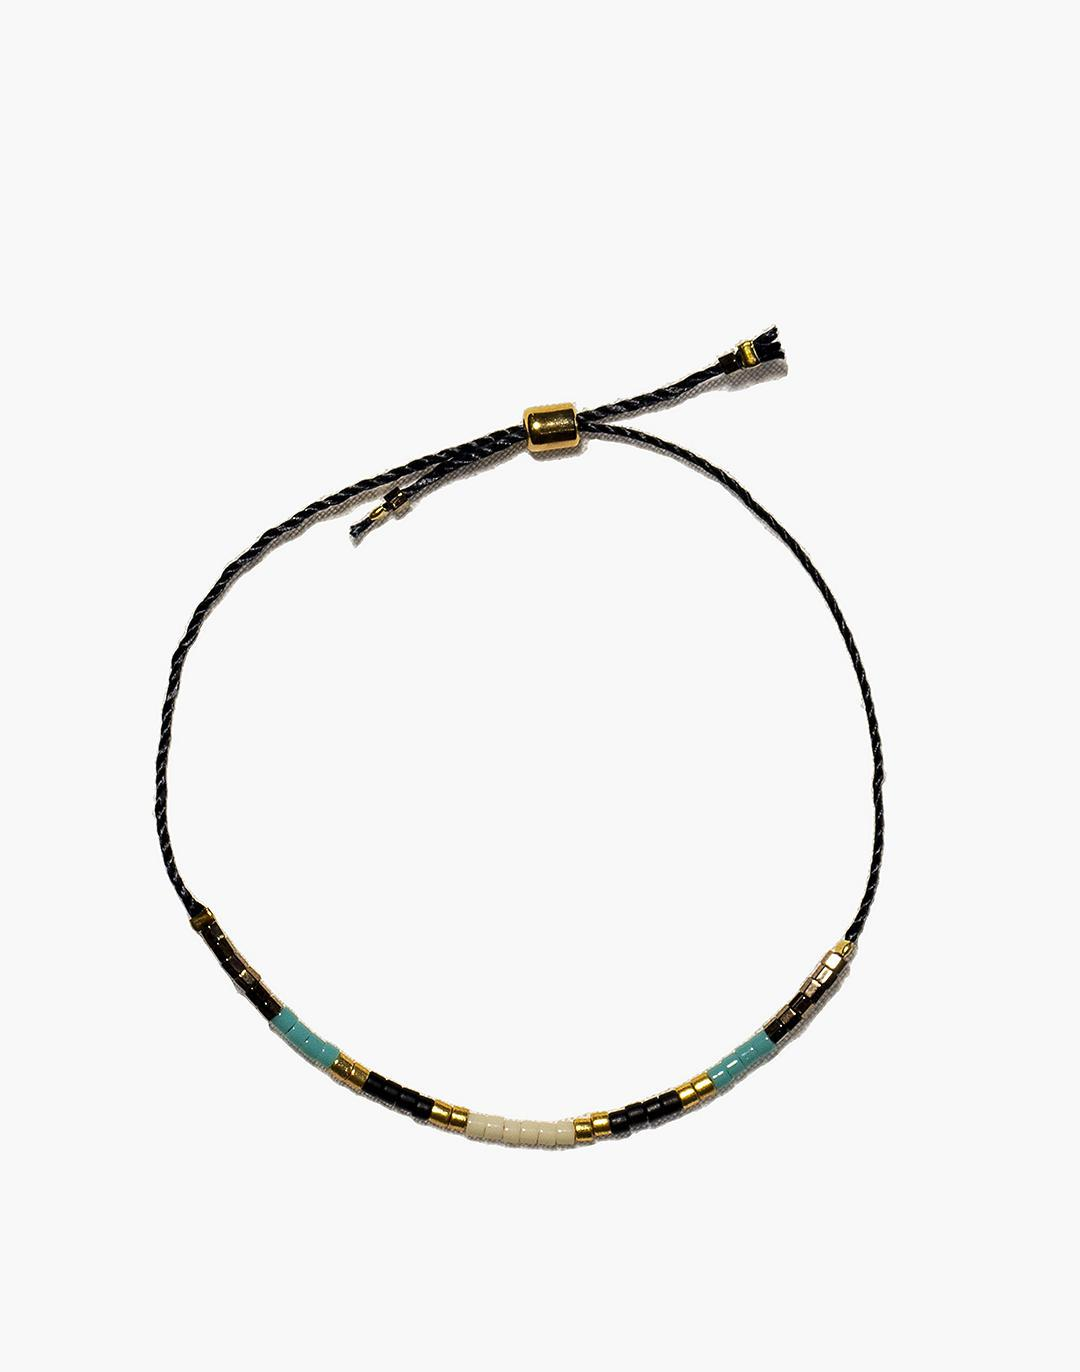 Cast of Stones Beaded Intention Bracelet in Turquoise Multicolor